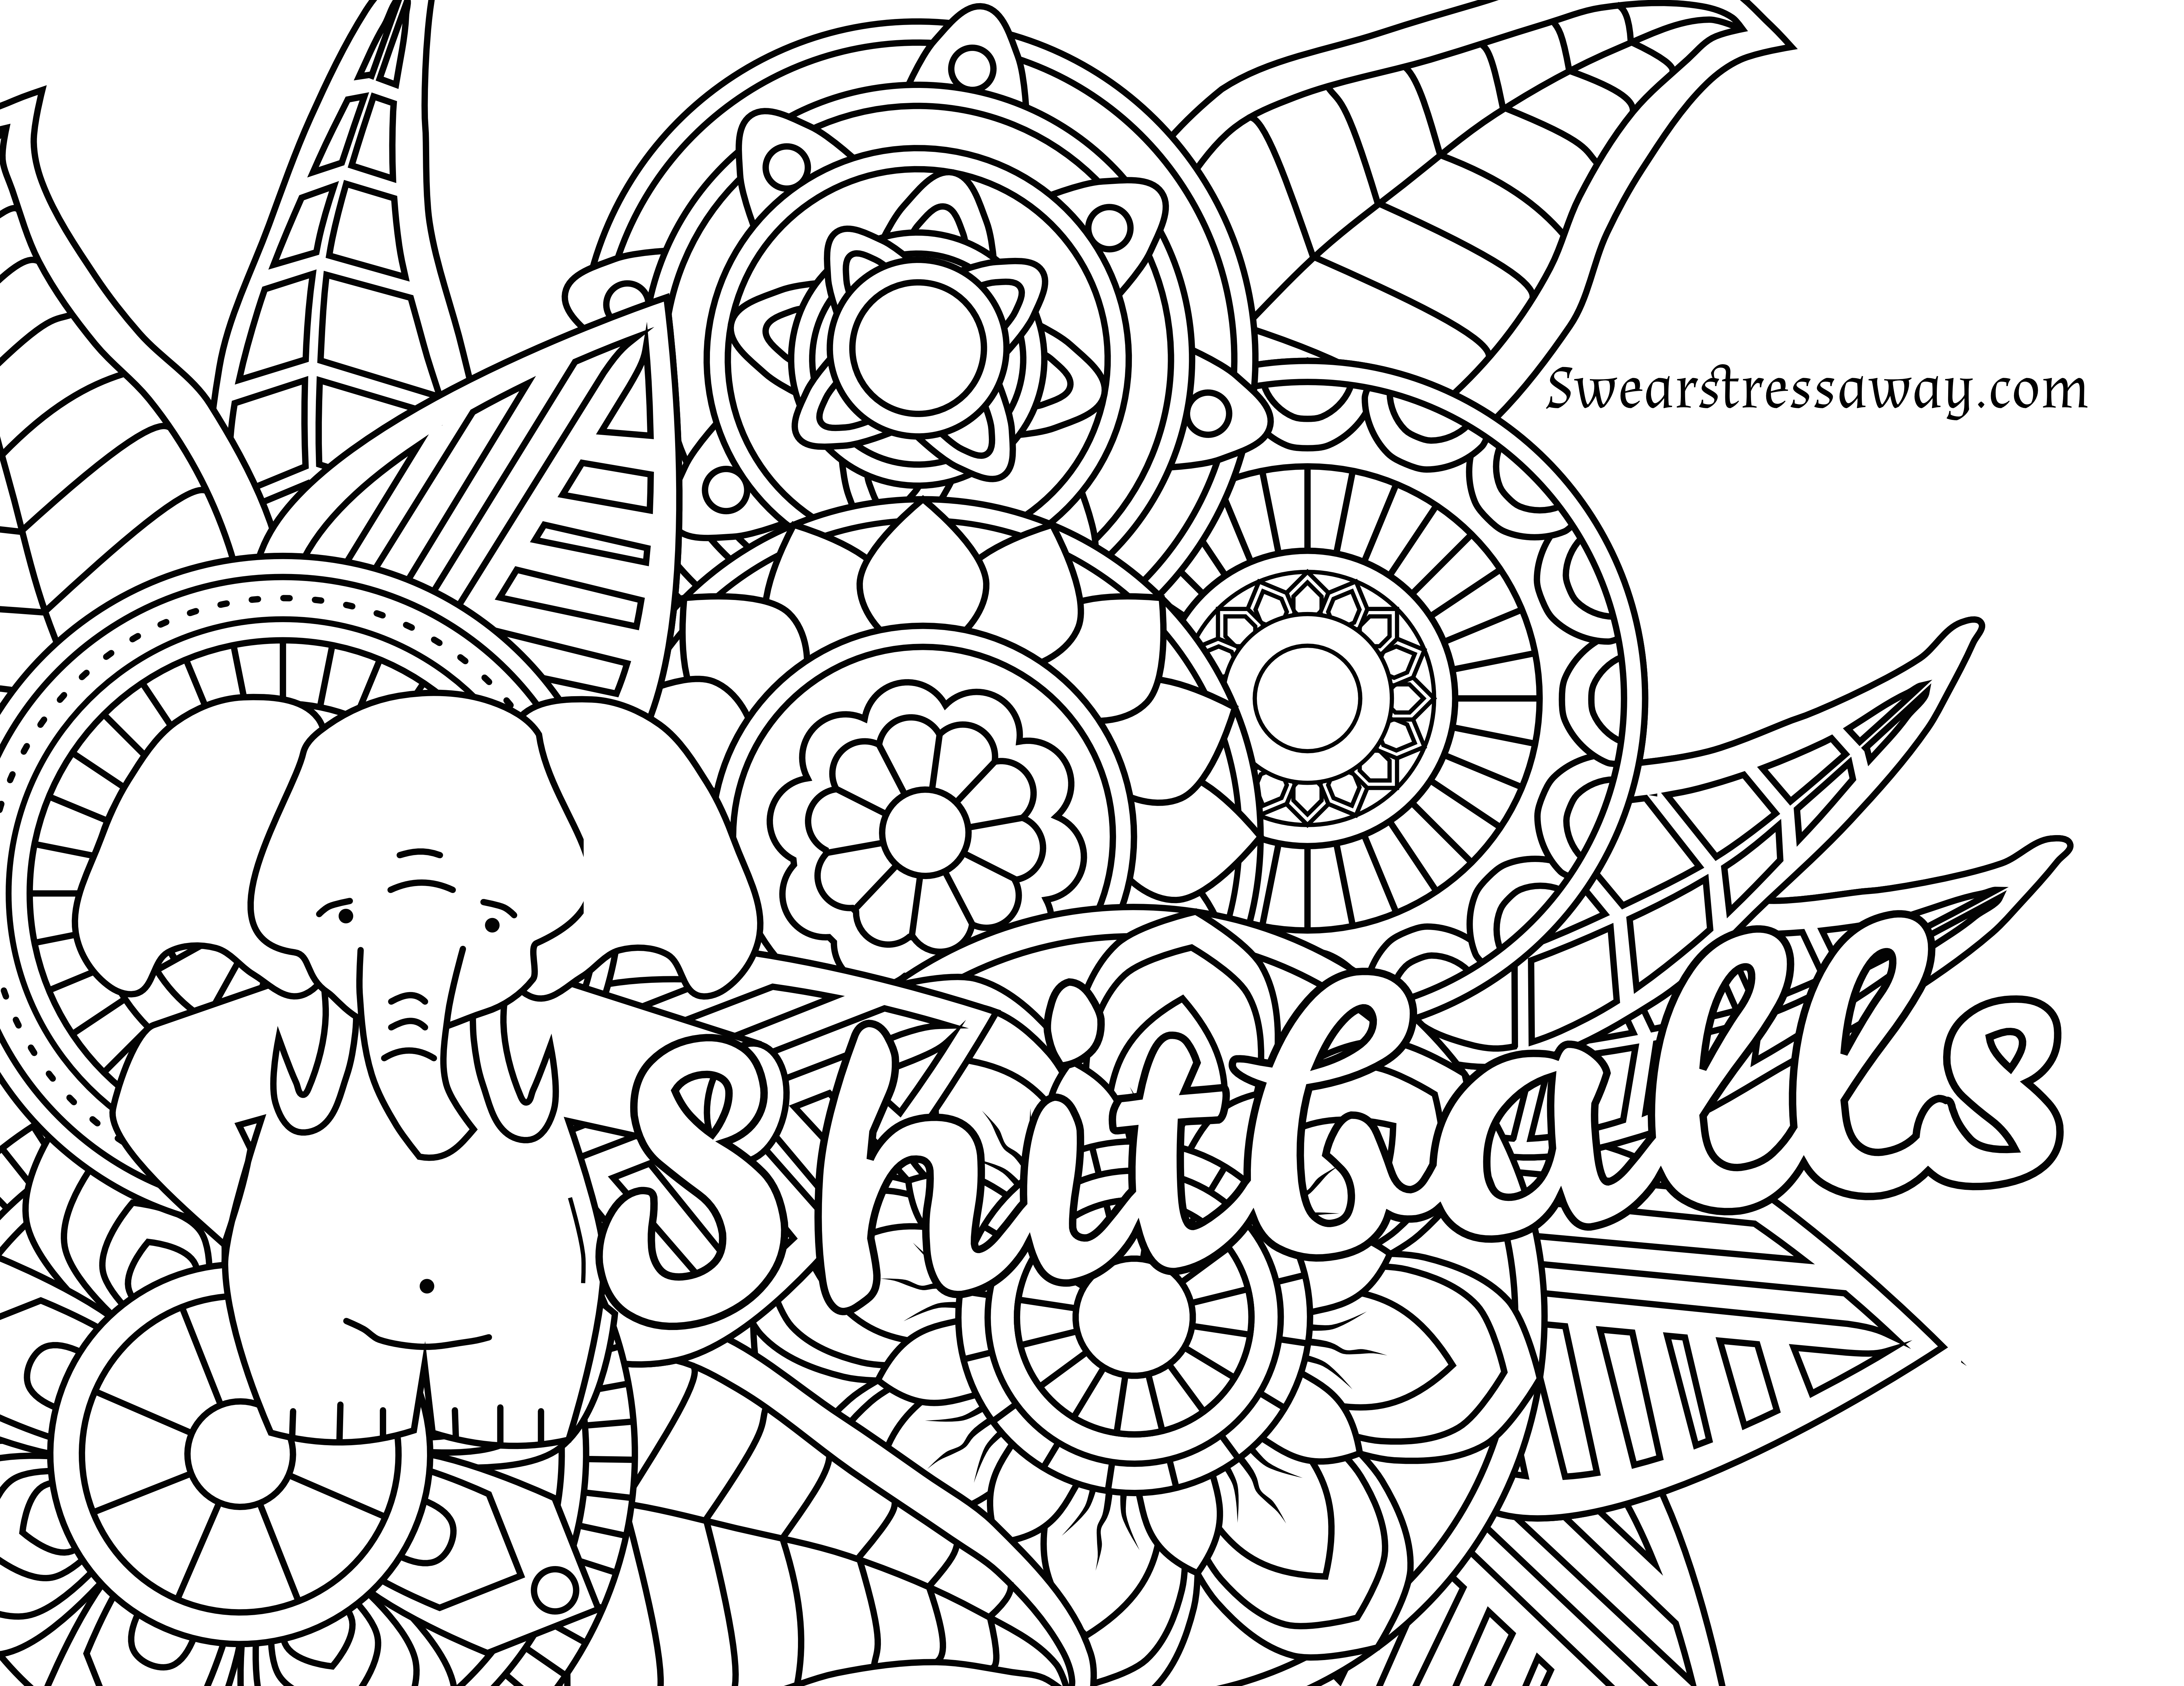 Coloring Page: 30 Printable Coloring Sheets For Adults. - Free Printable Coloring Pages For Adults